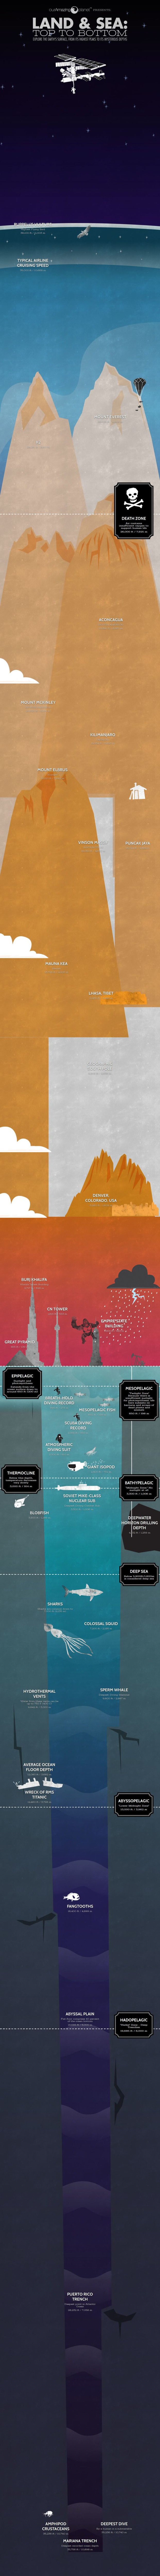 Our Planet From the Top to the Bottom #infographic